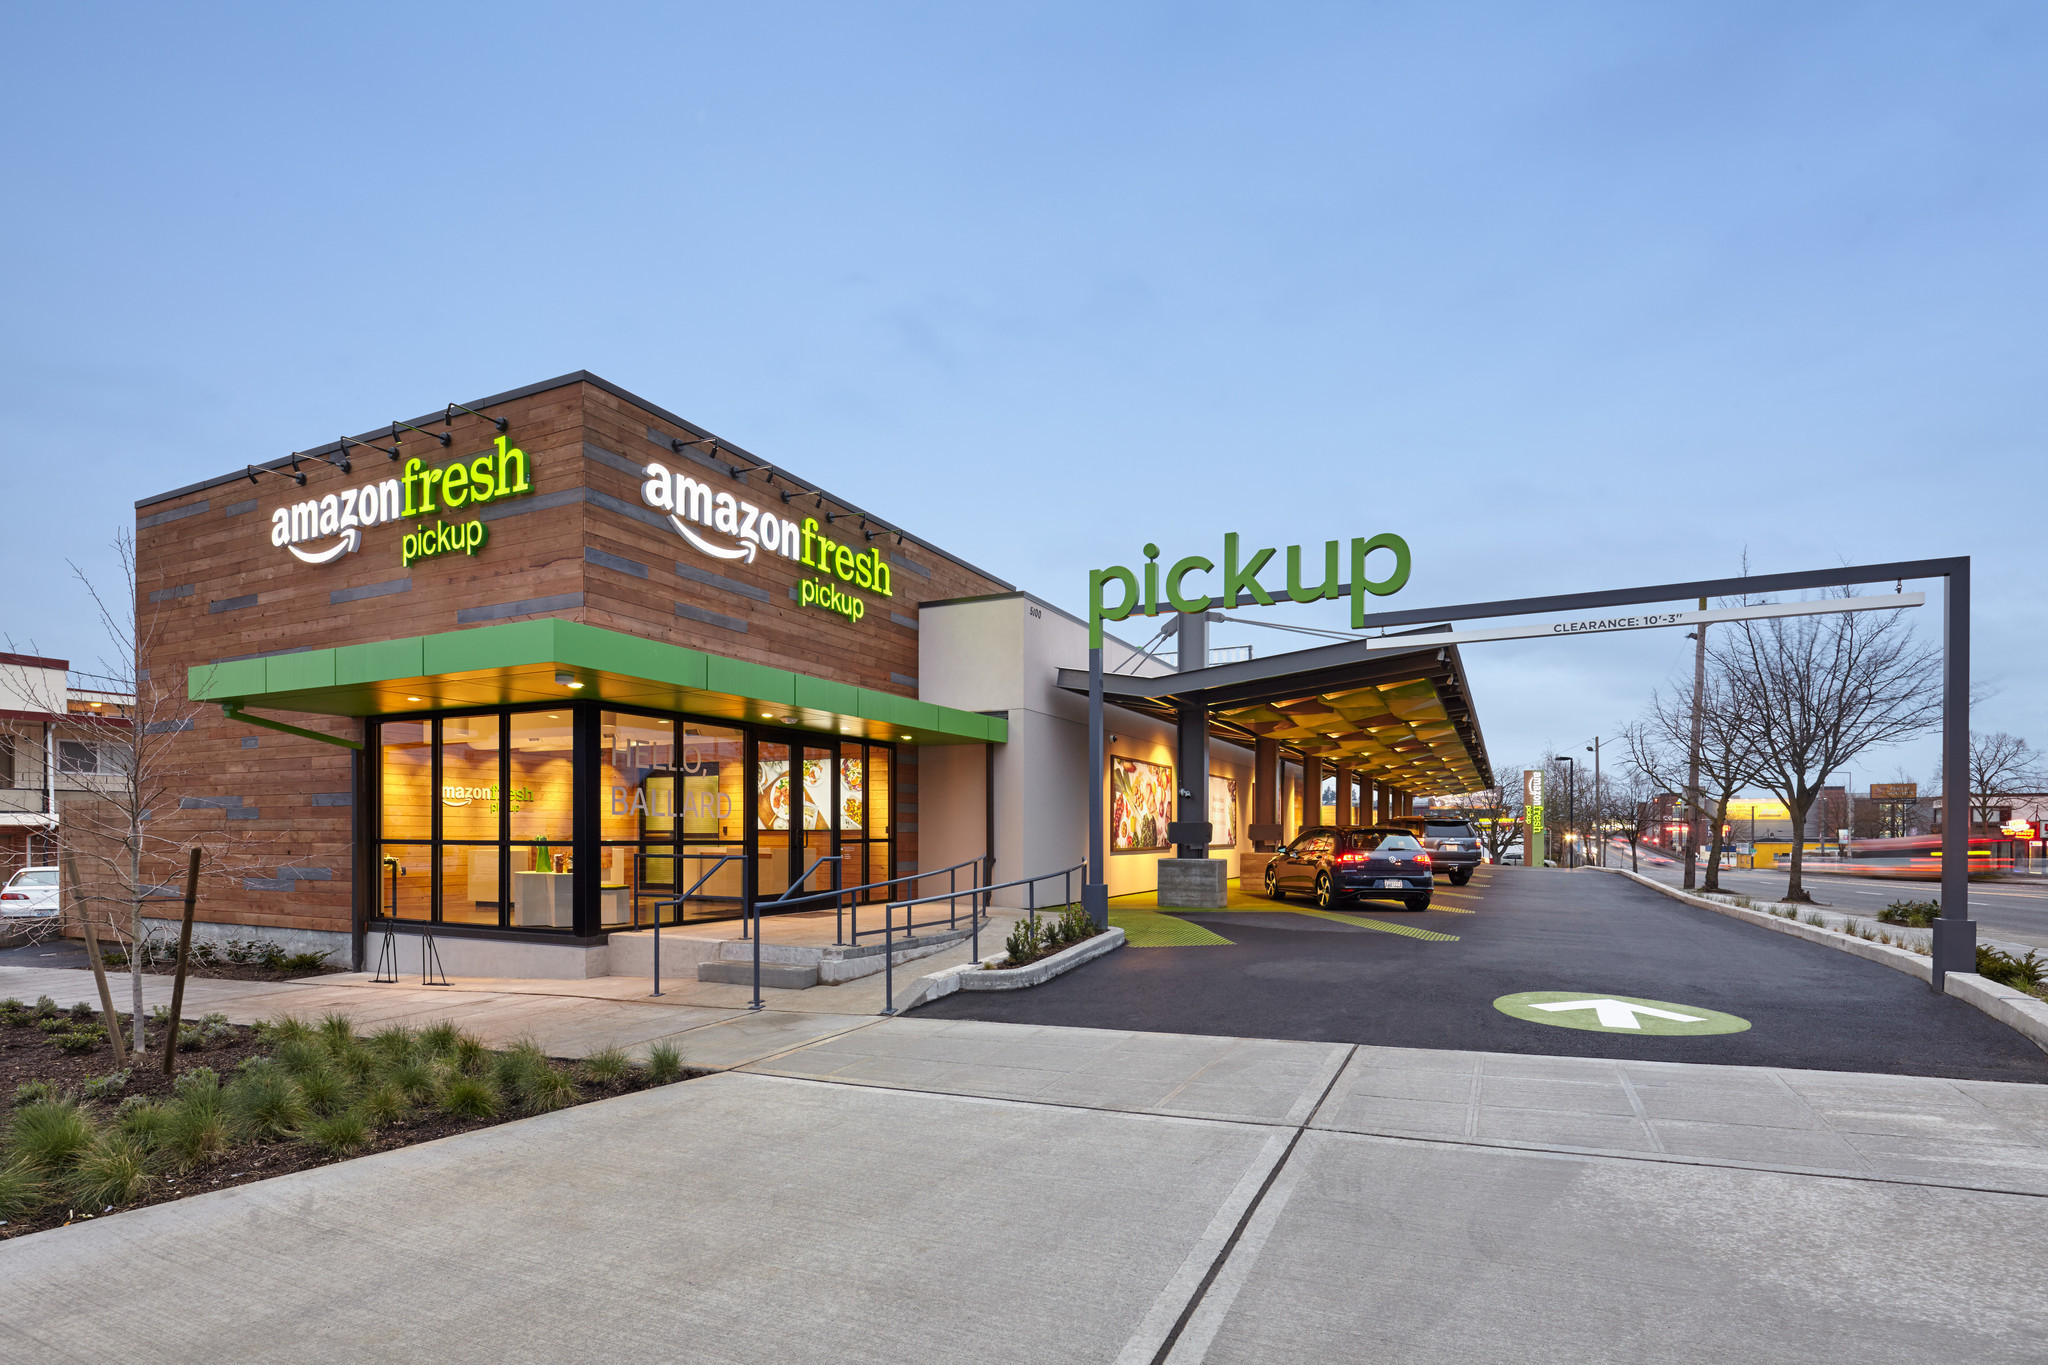 Amazonfresh Pickup Opens In Seattle Is San Diego Next The San